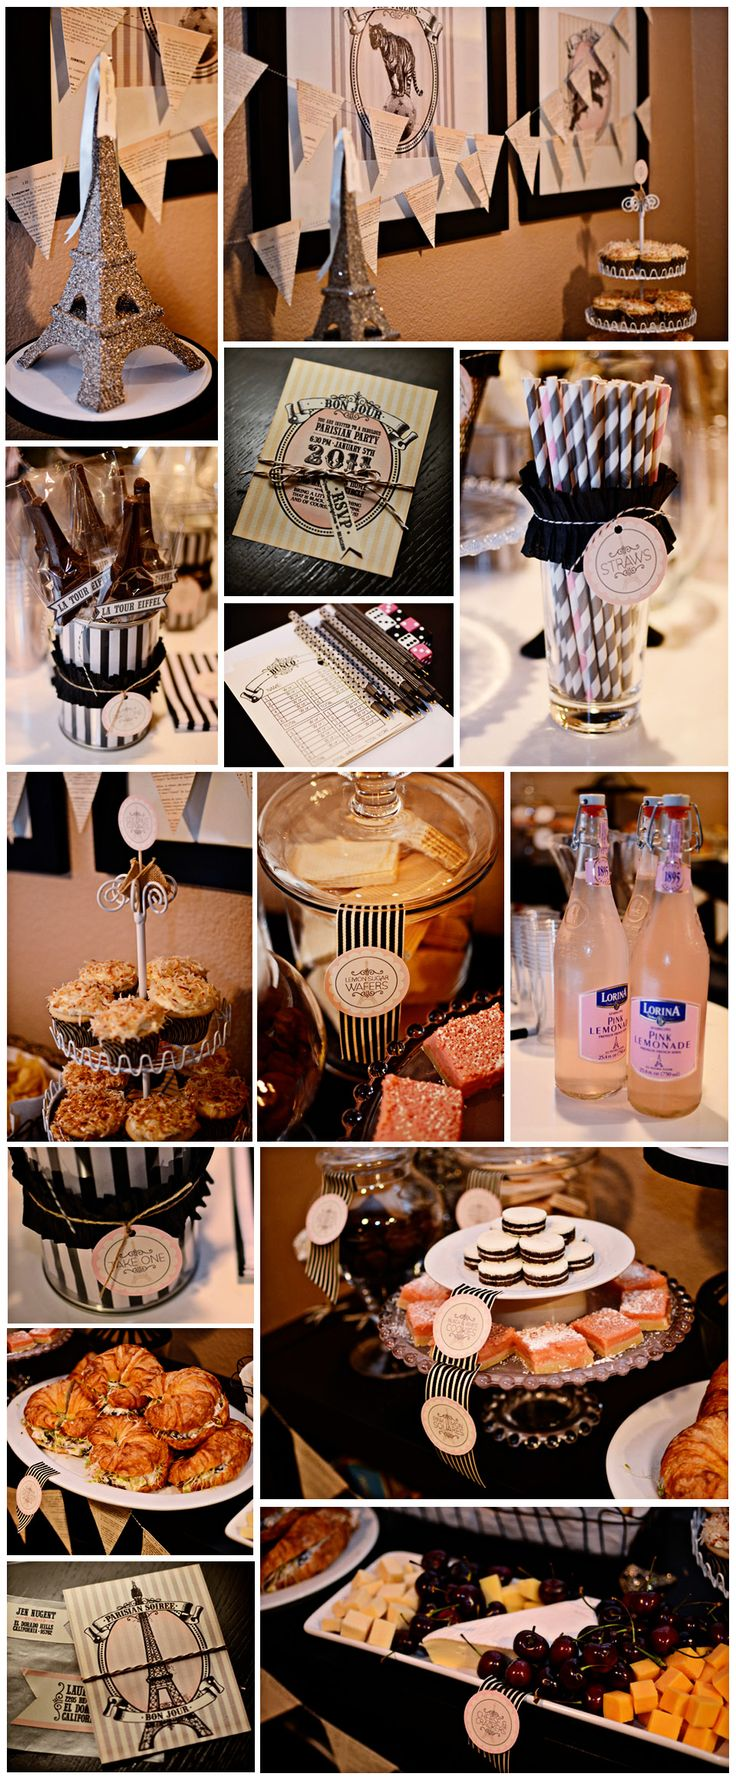 Paris themed birthday party ideas - Paris Themed Party Edith I May Throw Us One Of These When I Start